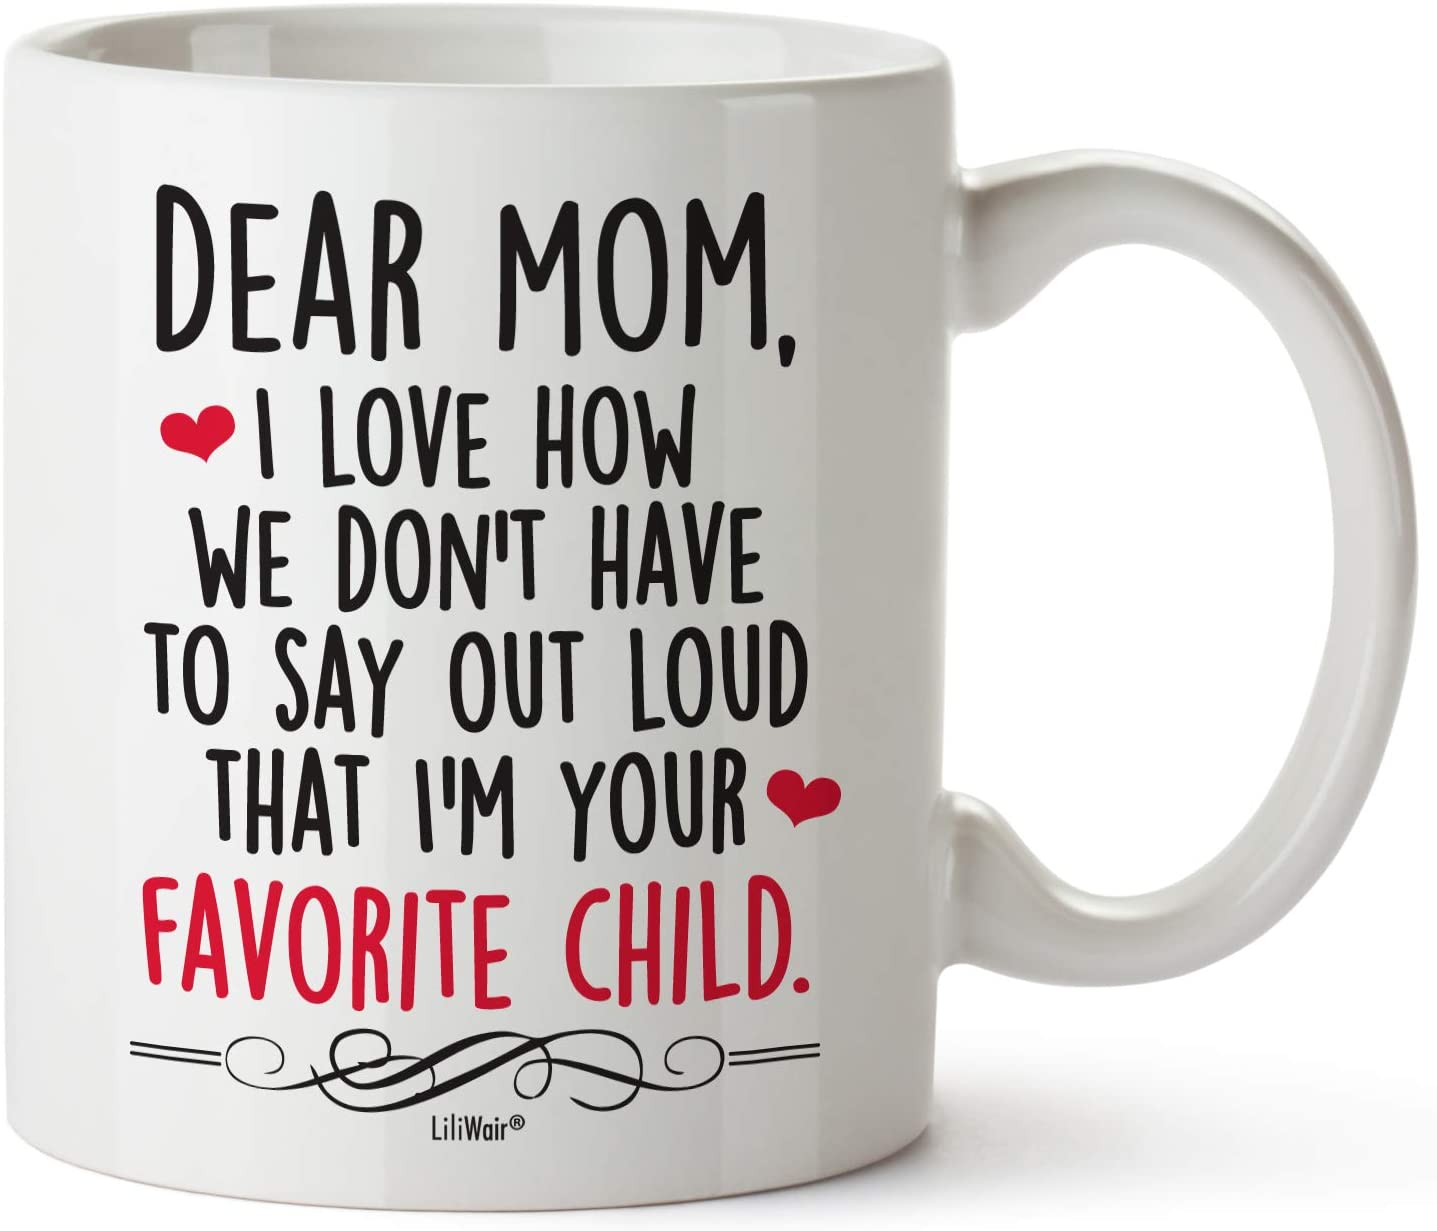 Mothers Day Gifts For Mom Gift Funny Birthday Coffee Cup Mugs From Daughter Son Mother's Day Mug Presents in Law Step Moms Finest Unique Sarcastic Present Ideas Stepmom Aunt Wife Tea Cups